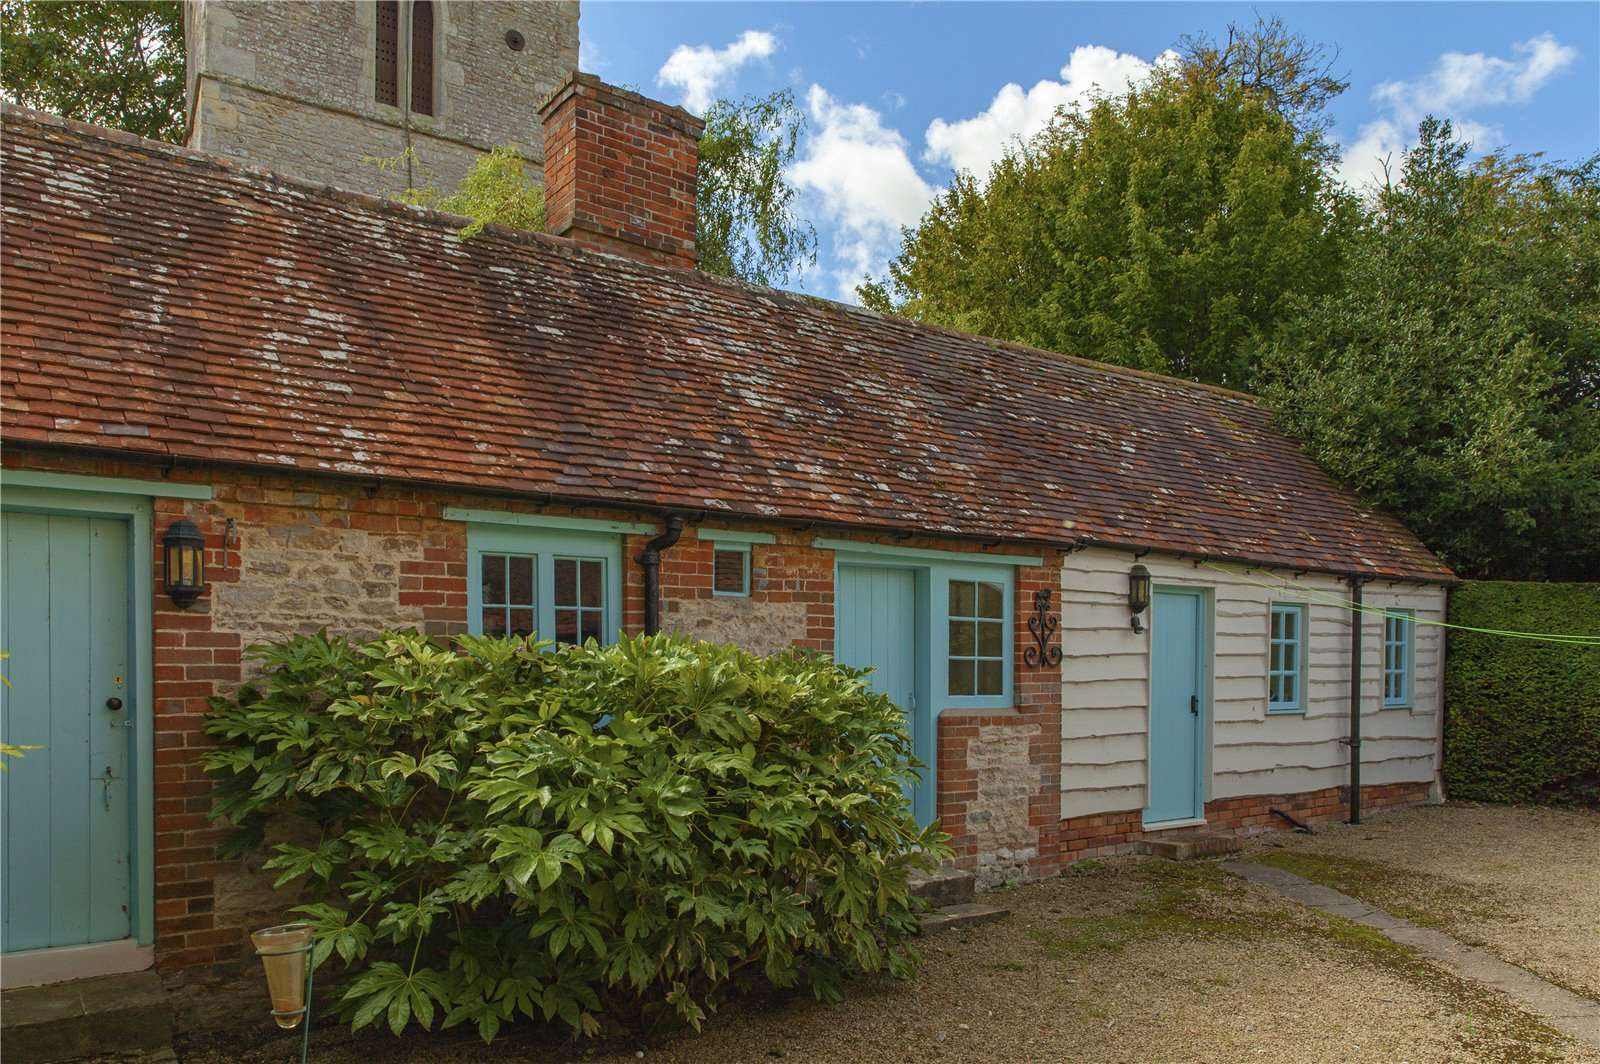 Beauforest House, Wallingford - Image Gallery 18 - Outbuildings